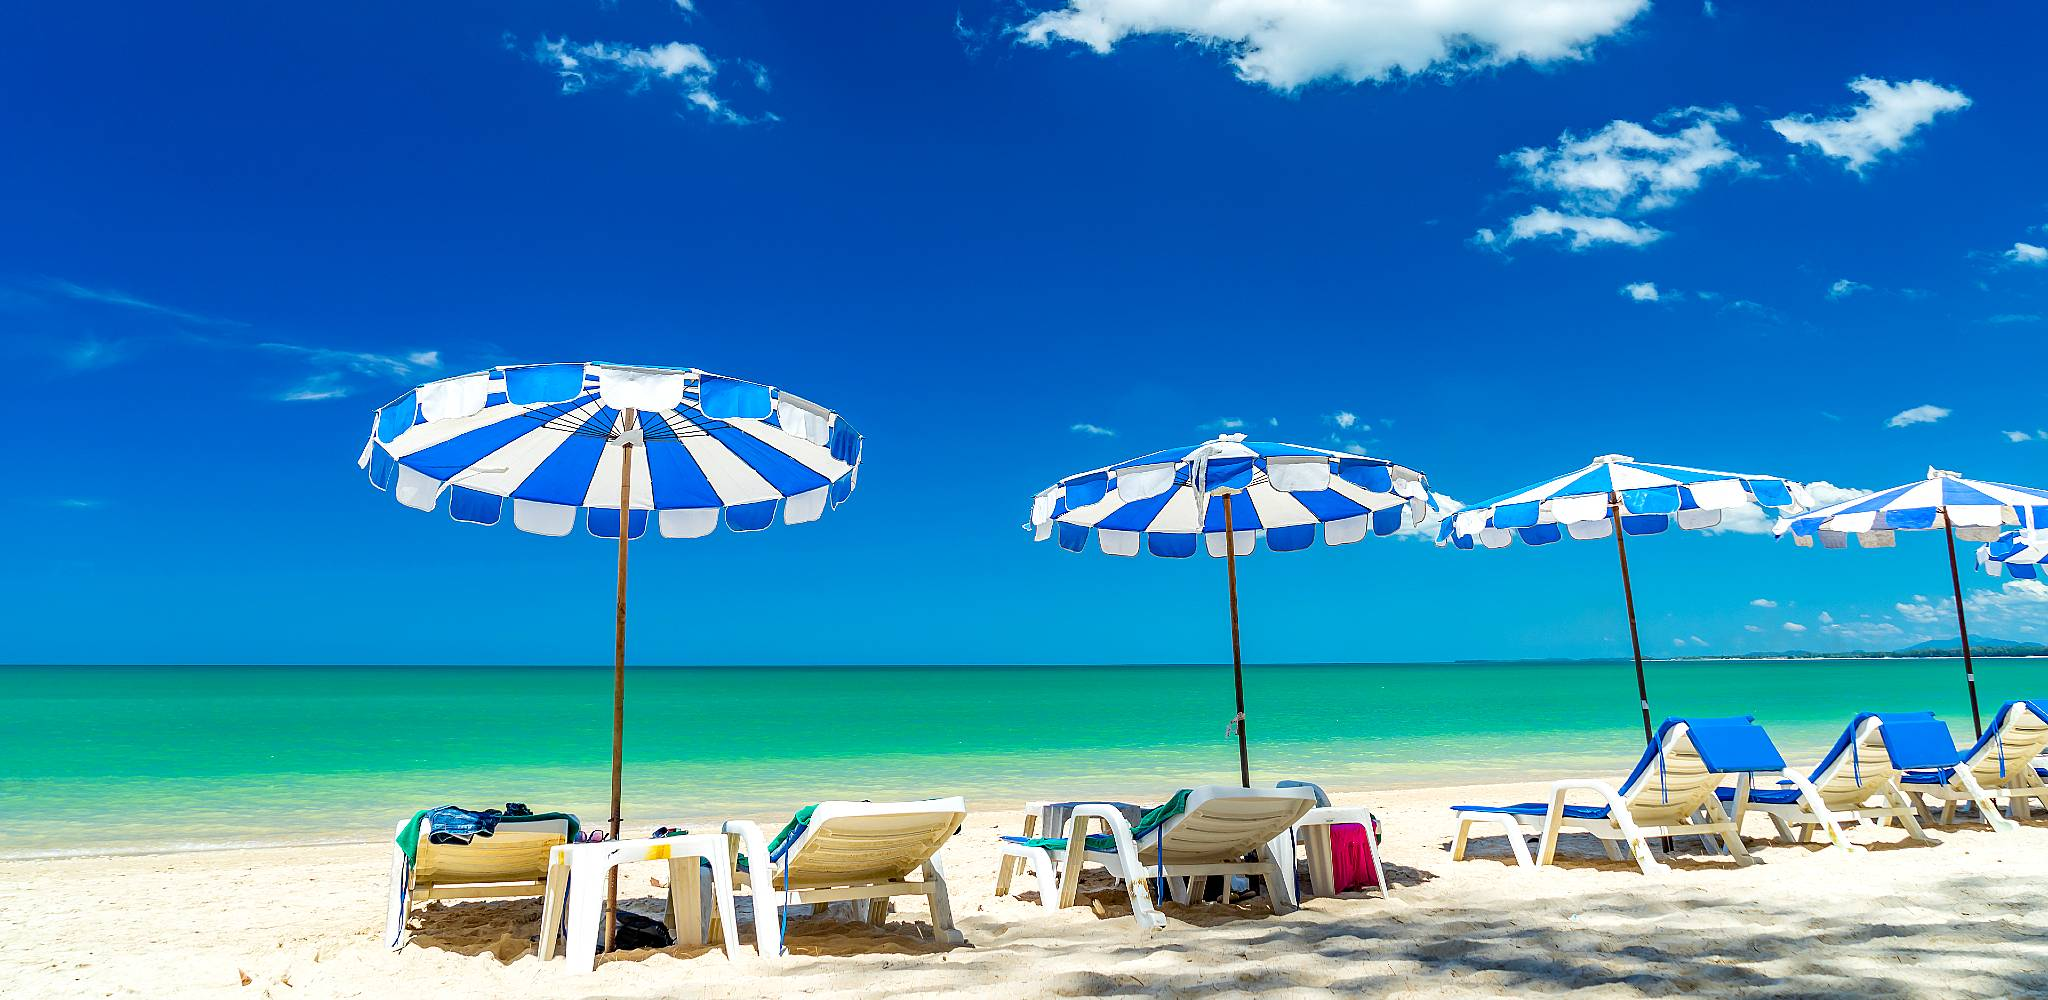 white beach with sunbeds and umbrellas on a blue sea